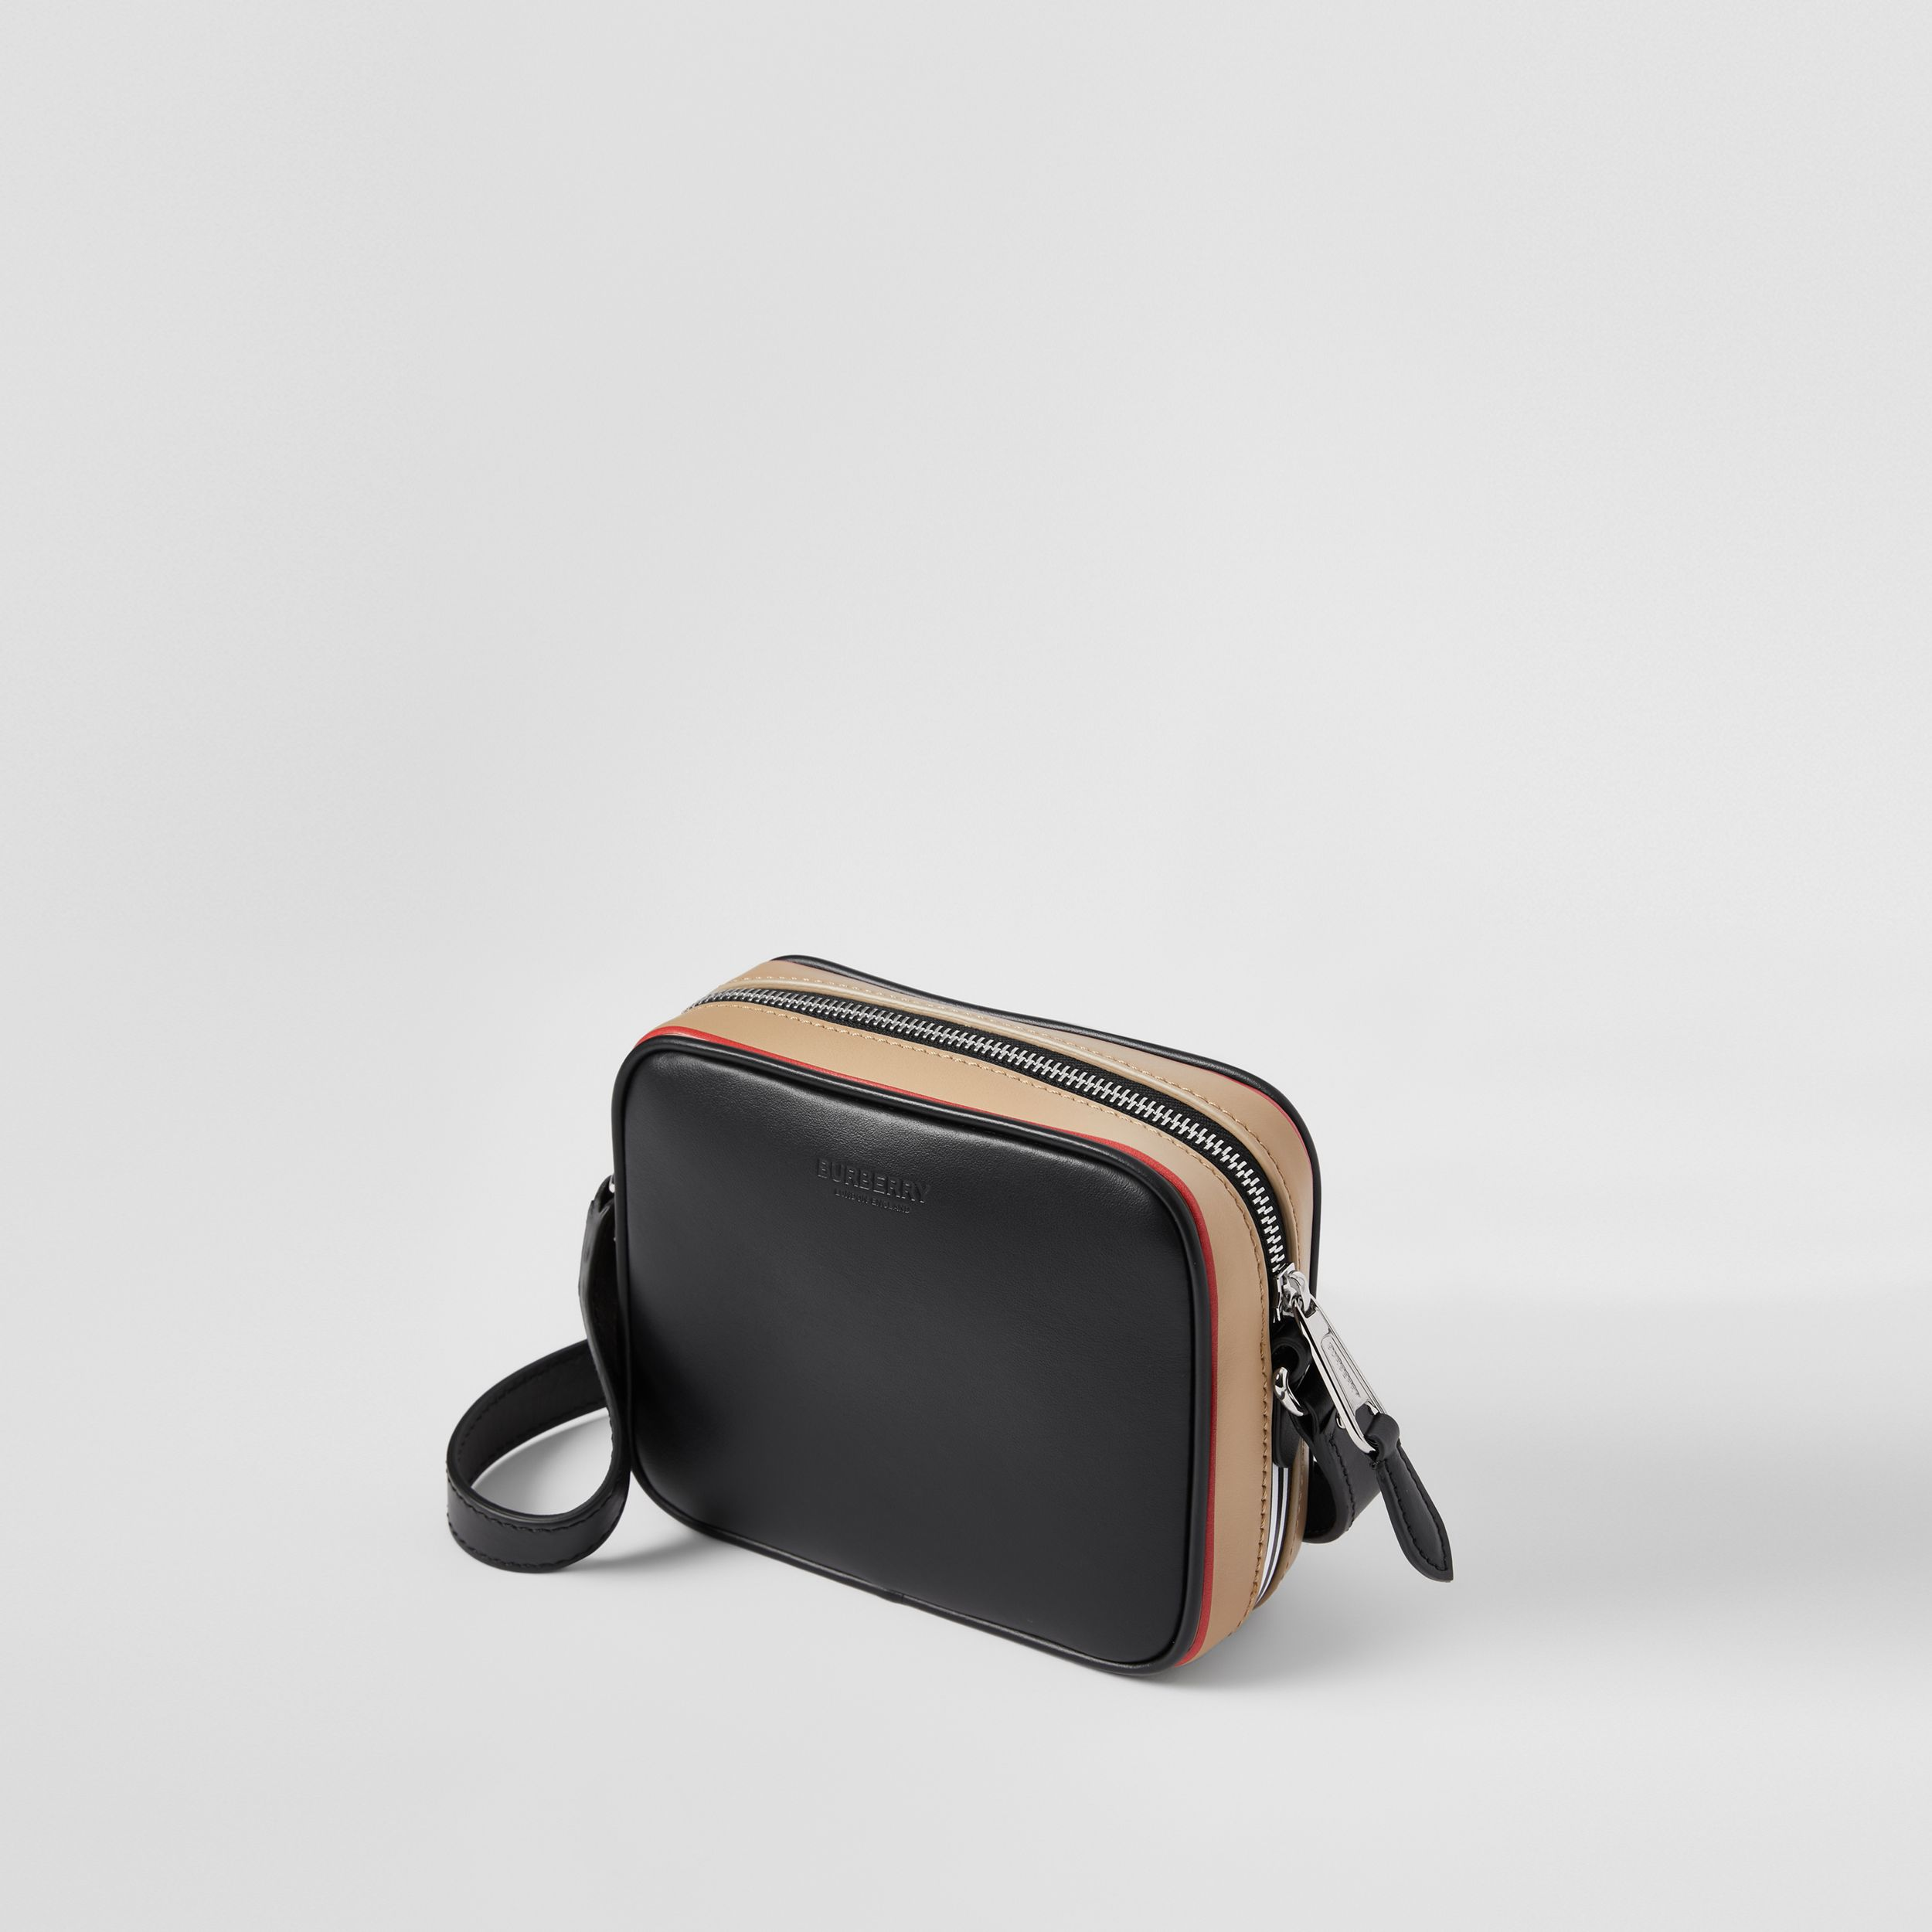 Icon Stripe Print Leather Crossbody Bag in Black | Burberry - 3